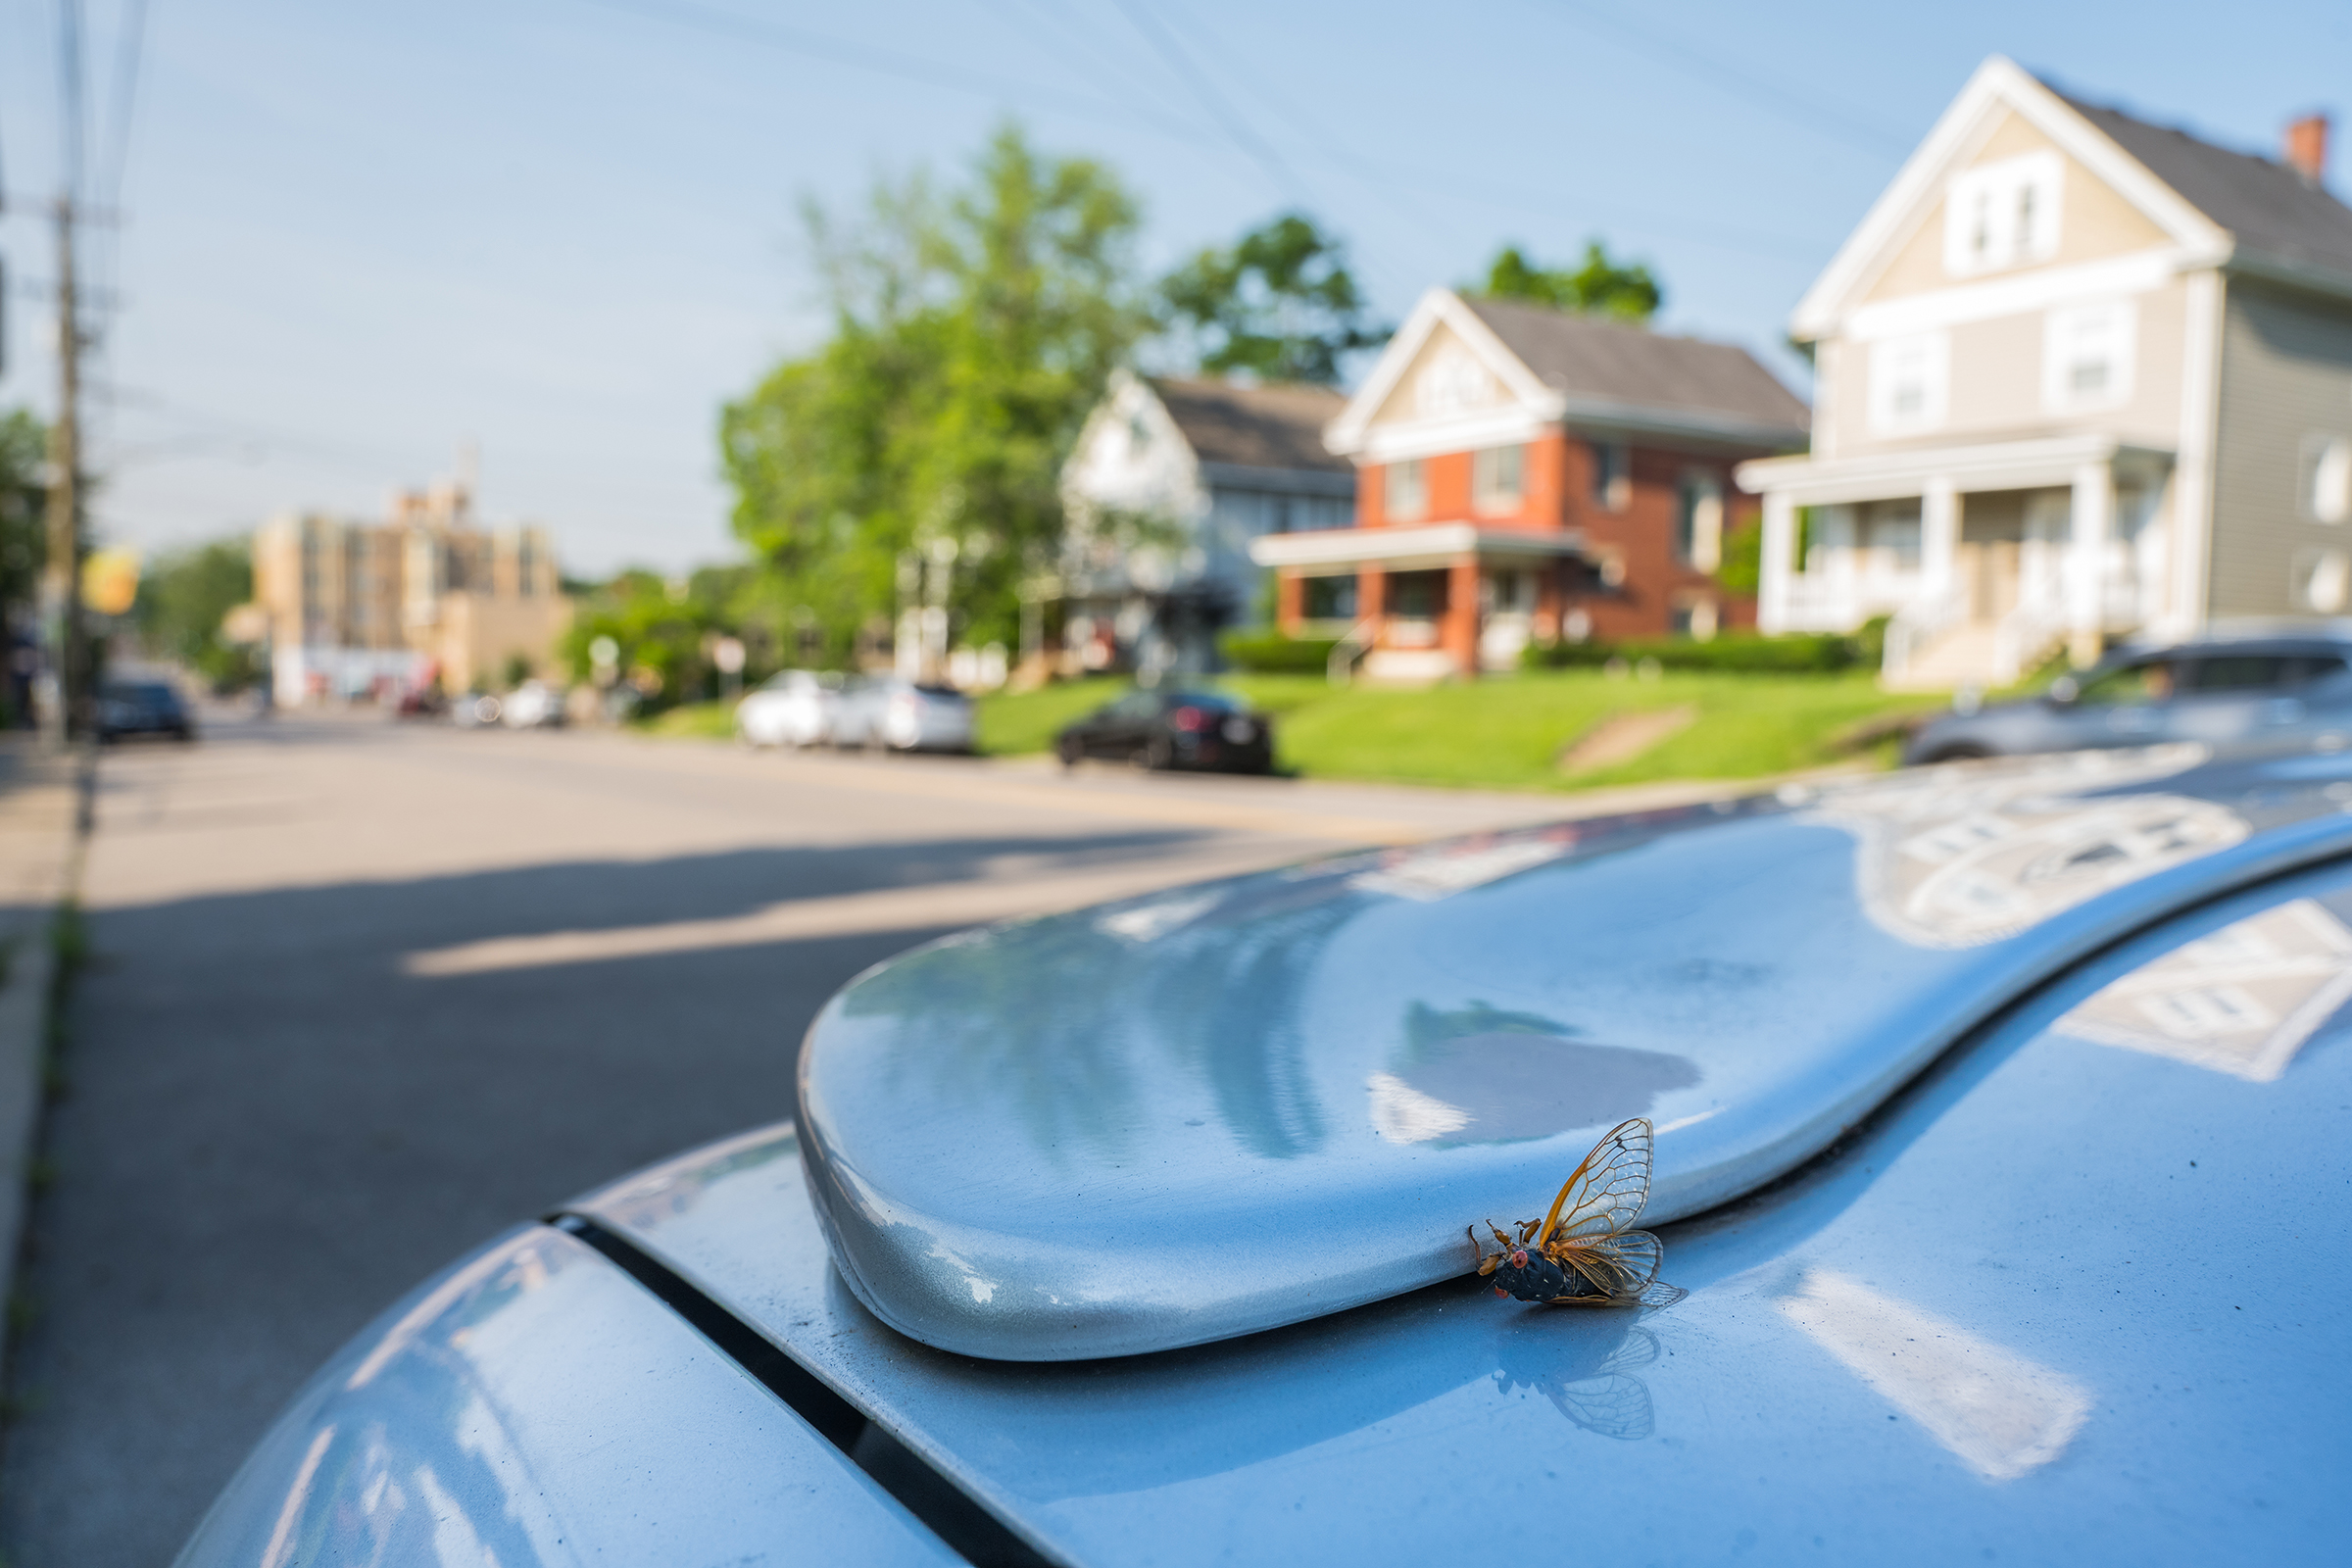 Cicadas are almost impossible to avoid during the summer of 2021 in the Ohio River Valley.